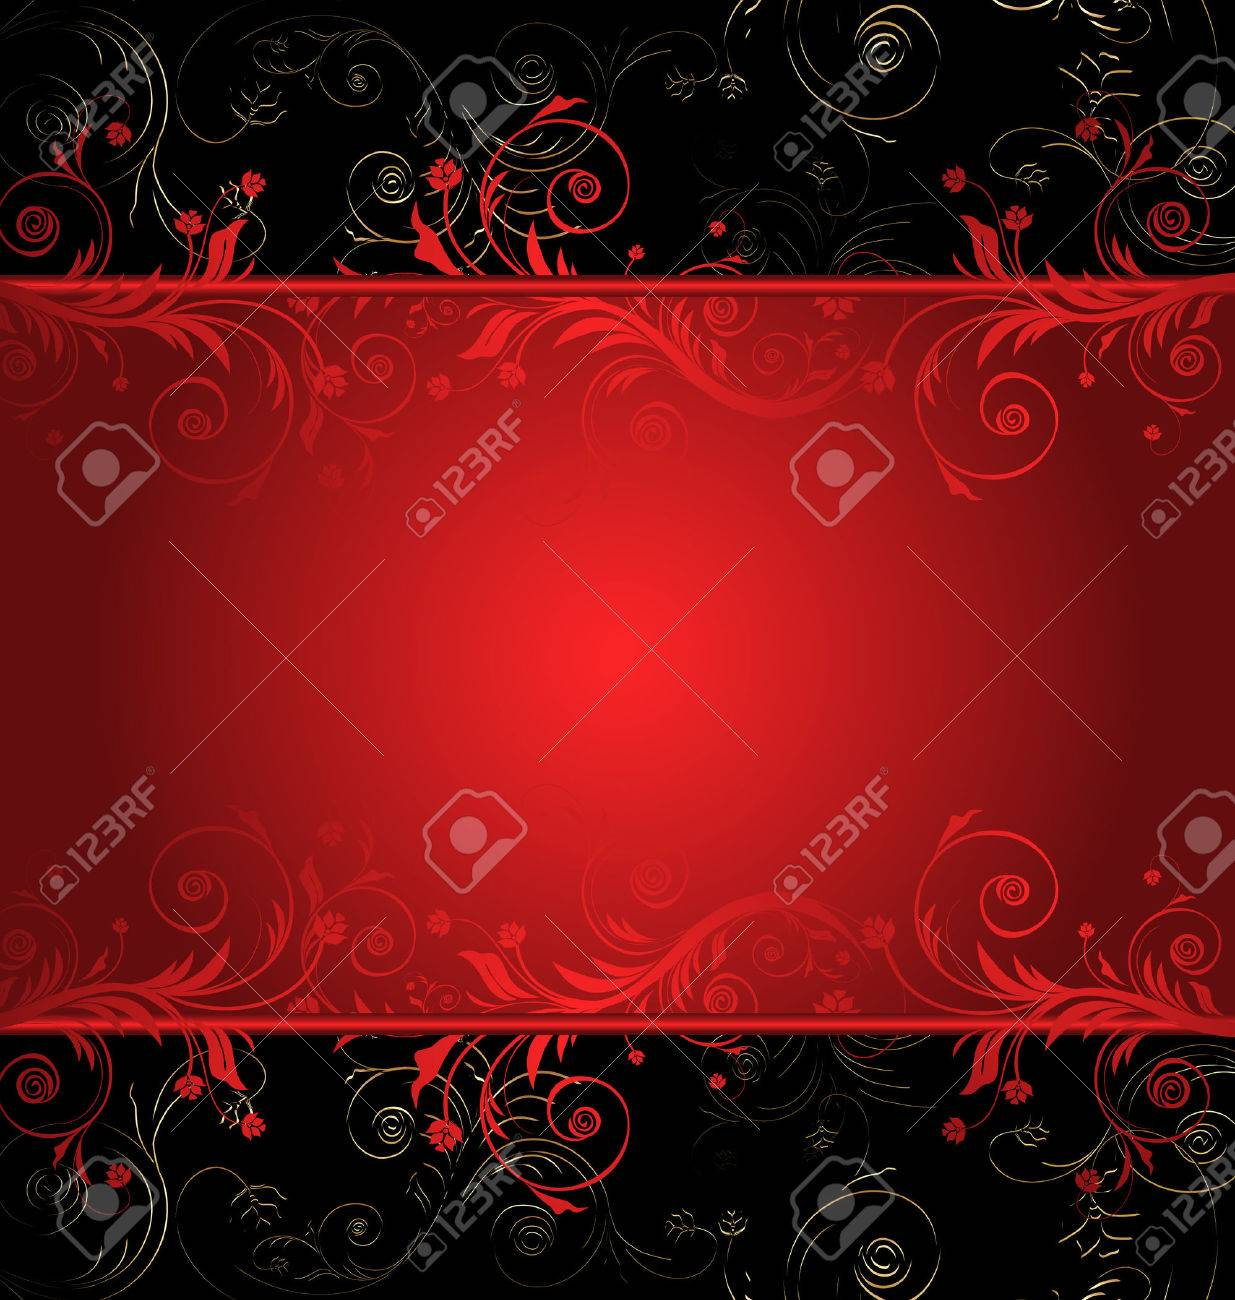 Vector black and red floral background for text with pattern - 6697431